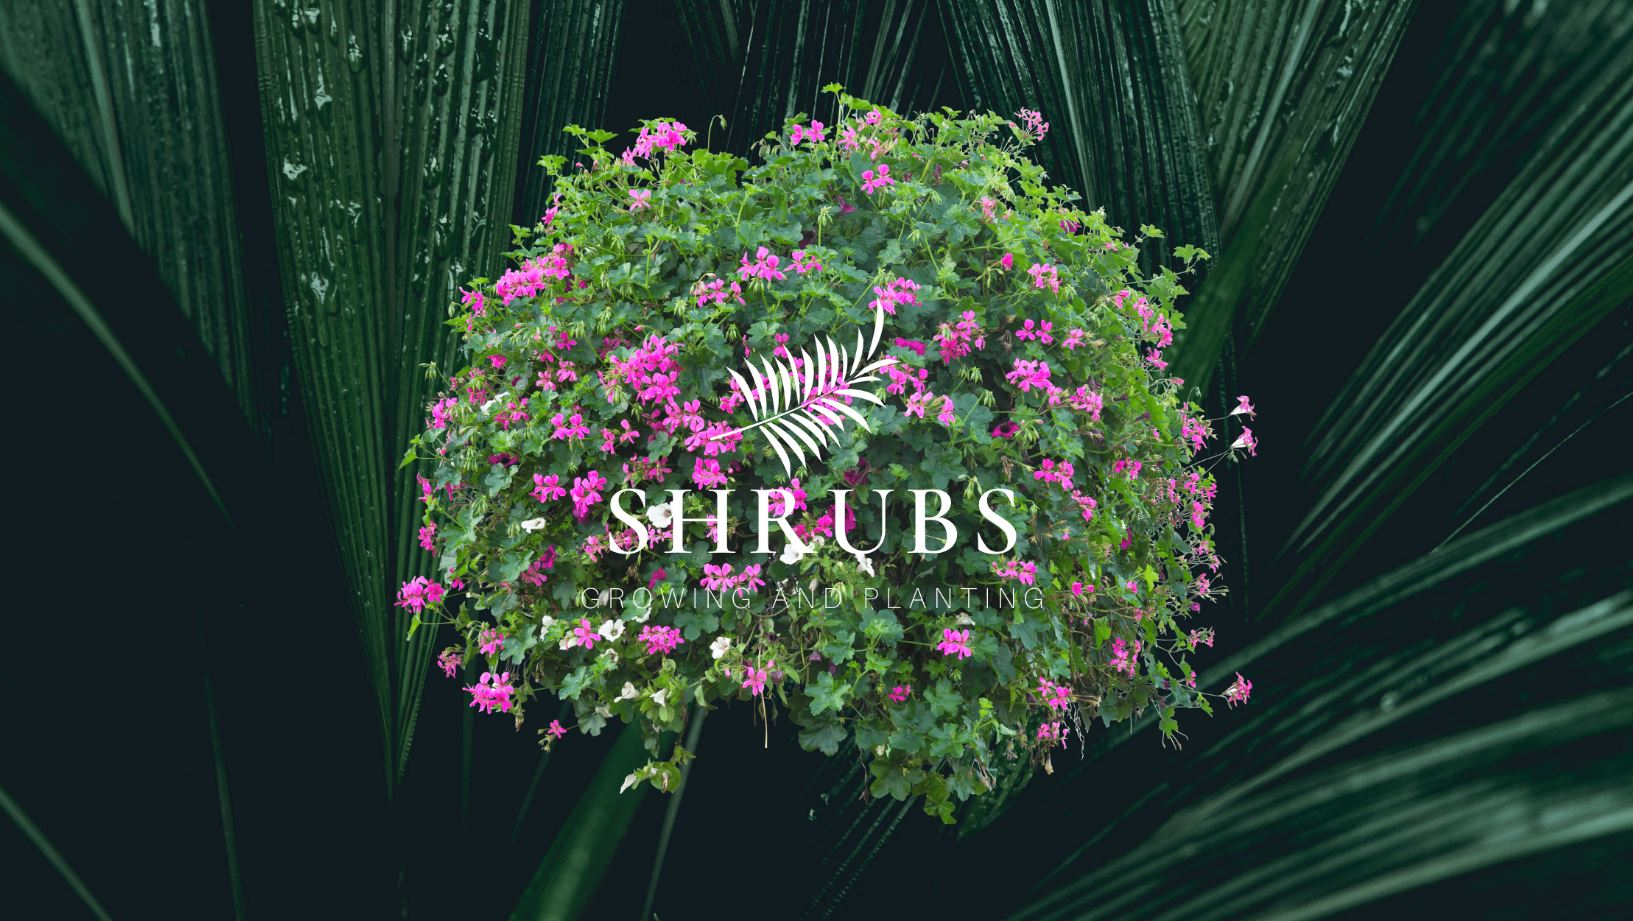 Getting the most from your garden shrubs - top tips